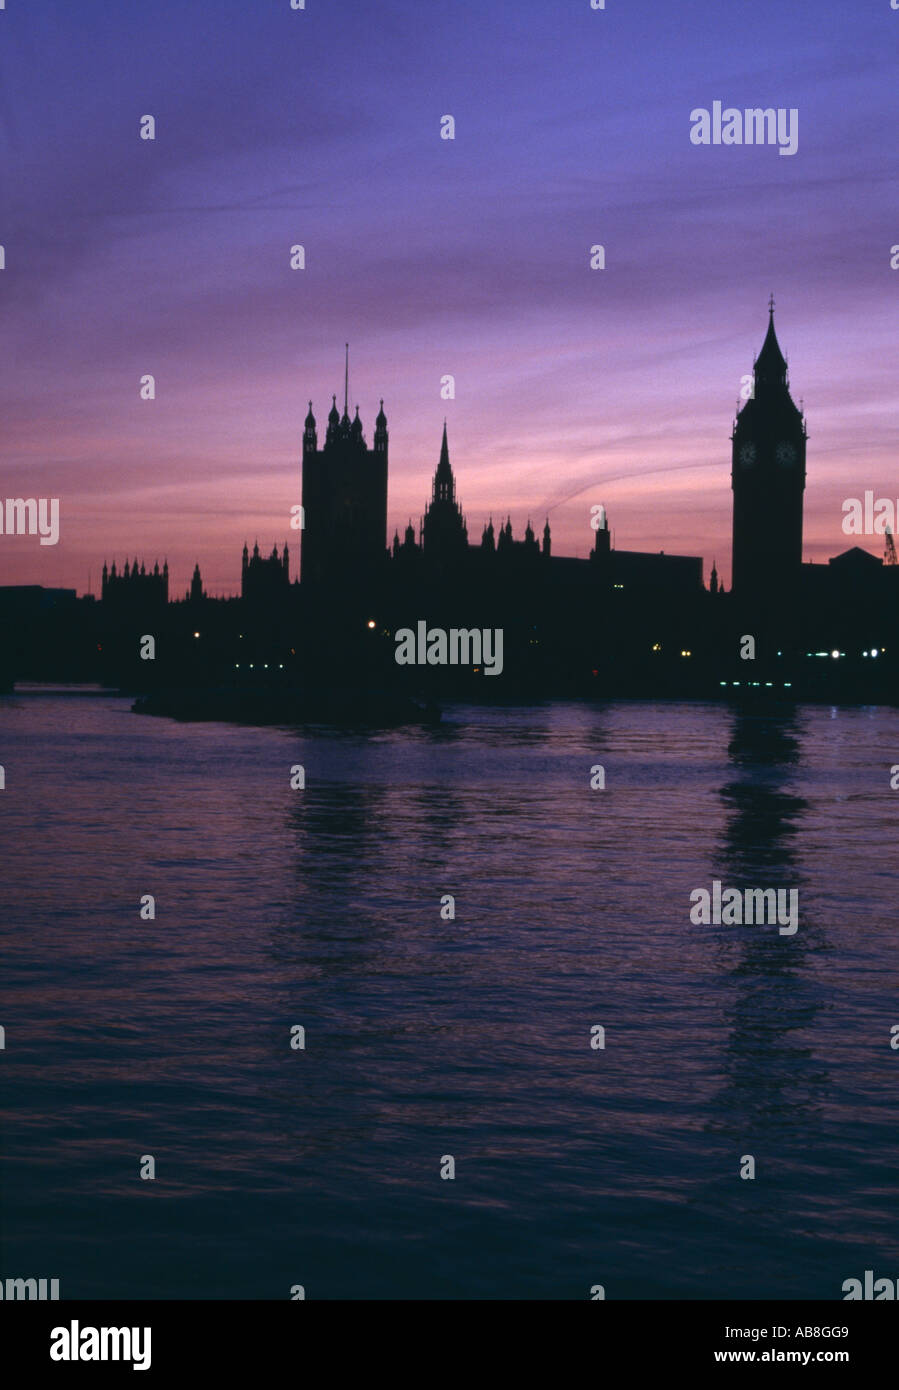 Houses of Parliament at Sunset, Westminster, London. Architect: Charles Barry, A. W. N. Pugin - Stock Image